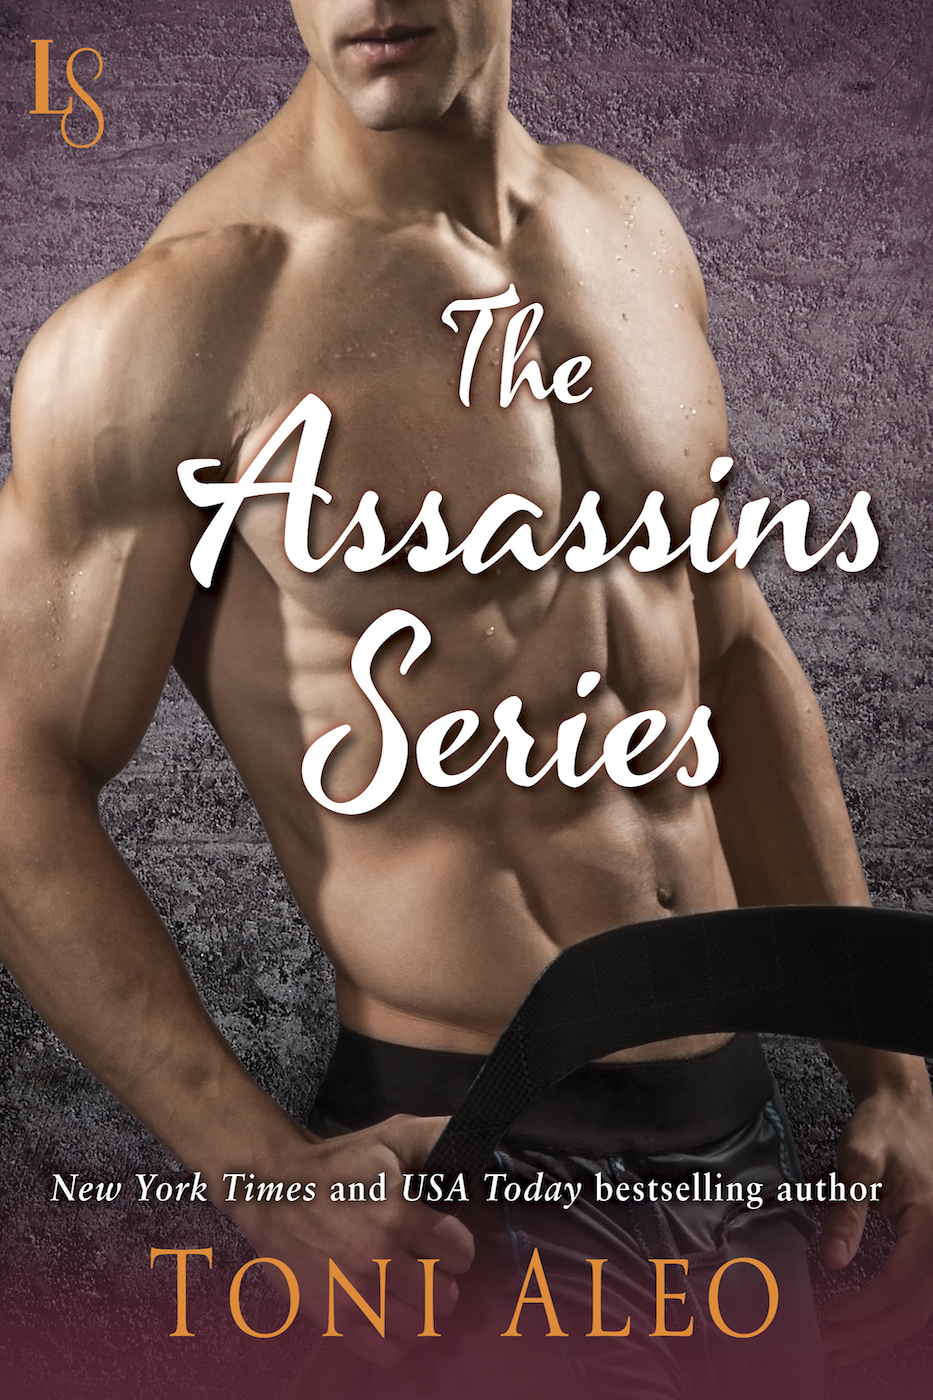 Assassins series - 5 book bundle Toni Aleo